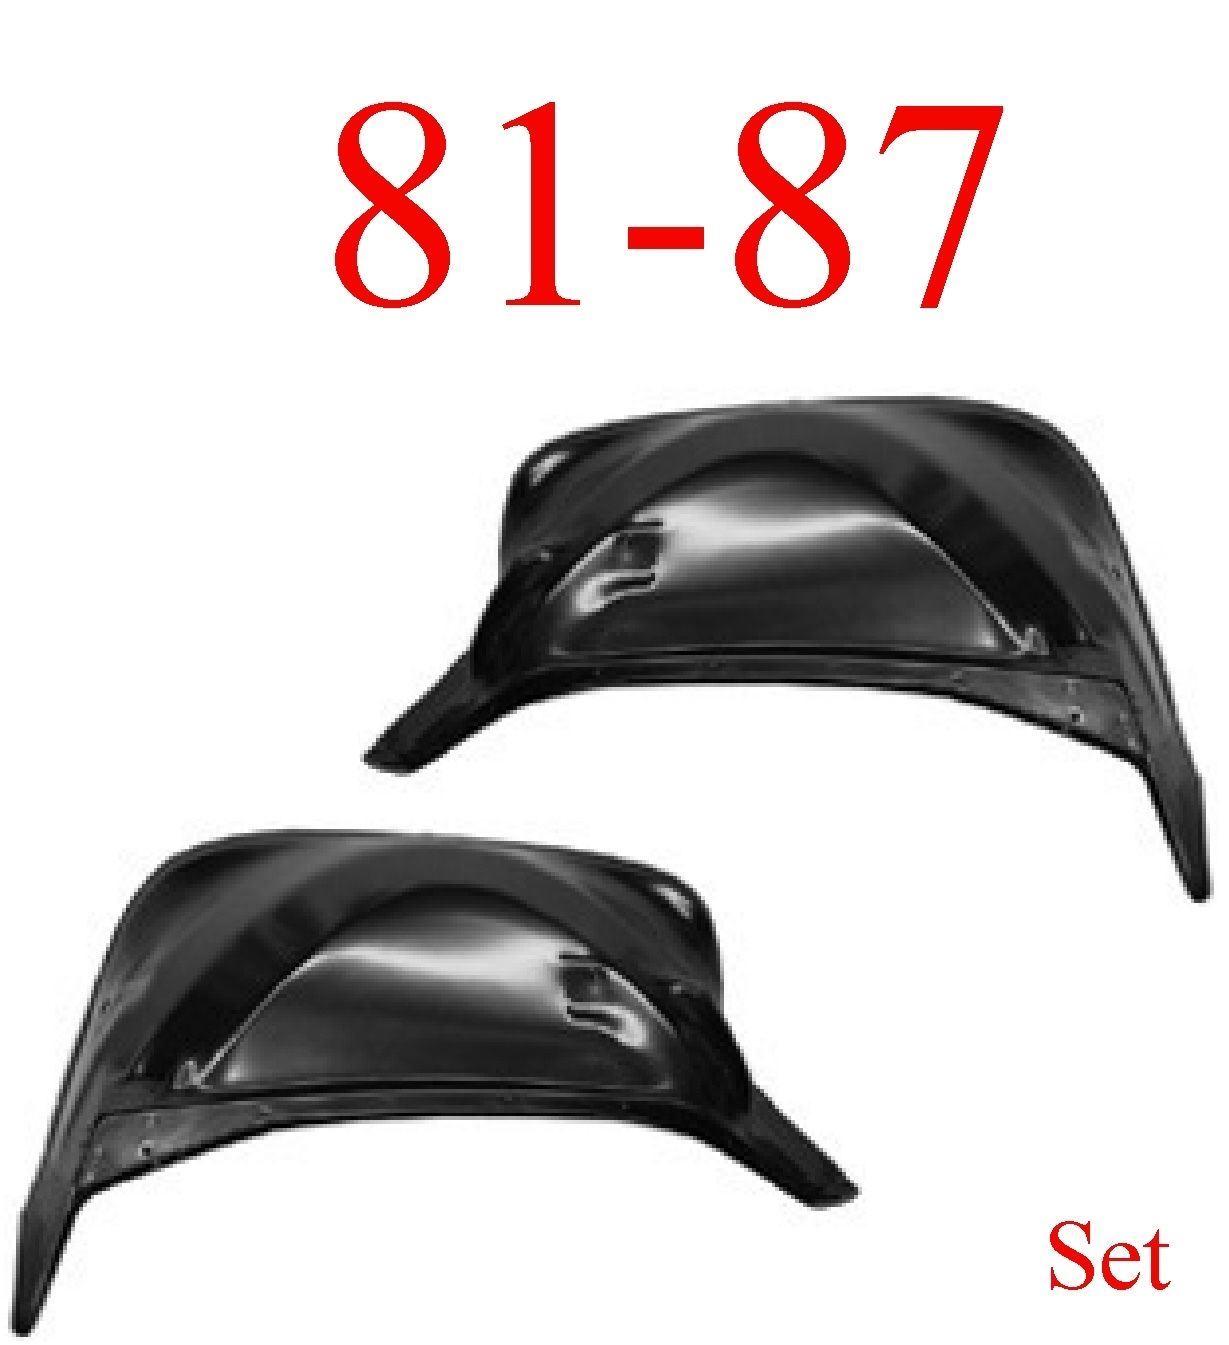 81-87-91 Chevy & GMC Inner Fender 2Pc Set